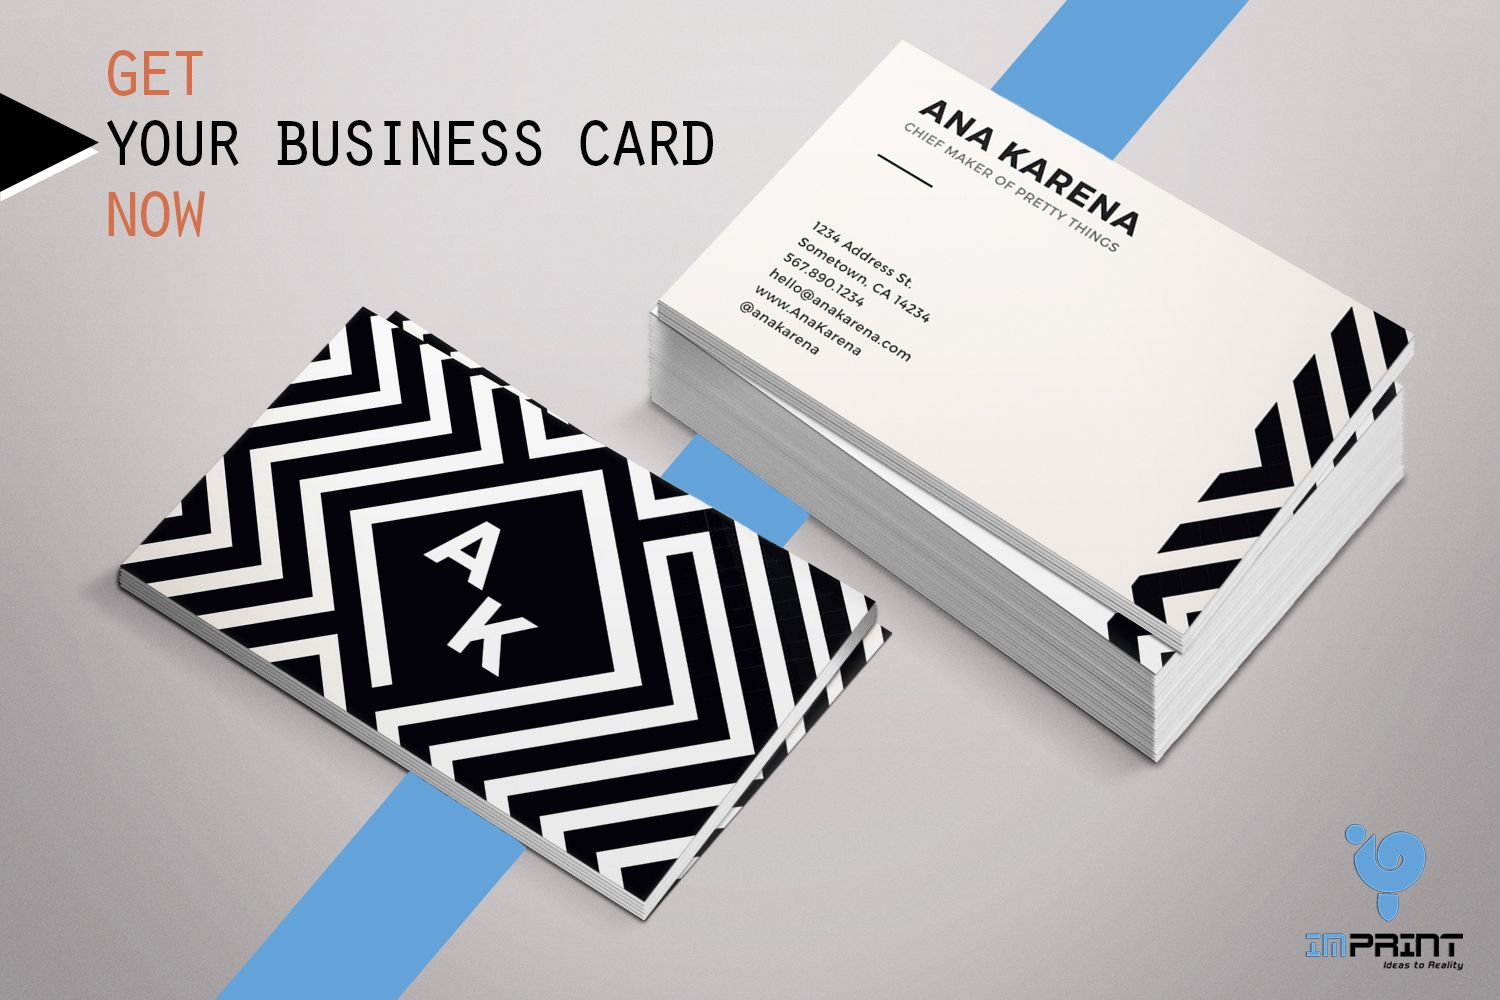 Your business cards get now we design all kind of business card with imprint desing and printing your business cards get now reheart Gallery